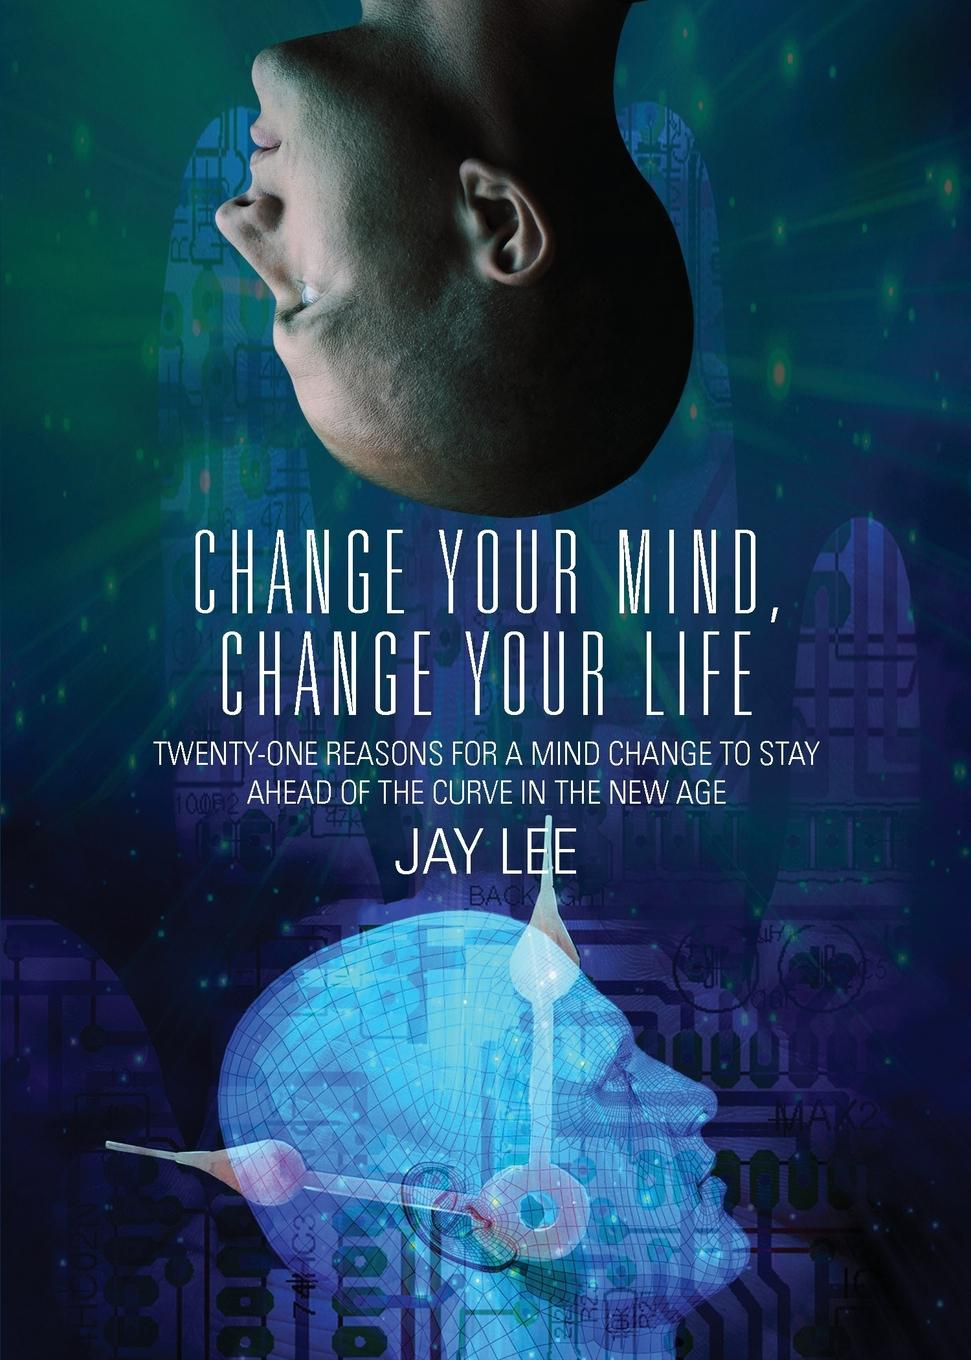 Jay Lee Change Your Mind, Change Your Life. Twenty-One Reasons for a Mind Change to Stay Ahead of the Curve in the New Age pat mesiti the $1 million reason to change your mind